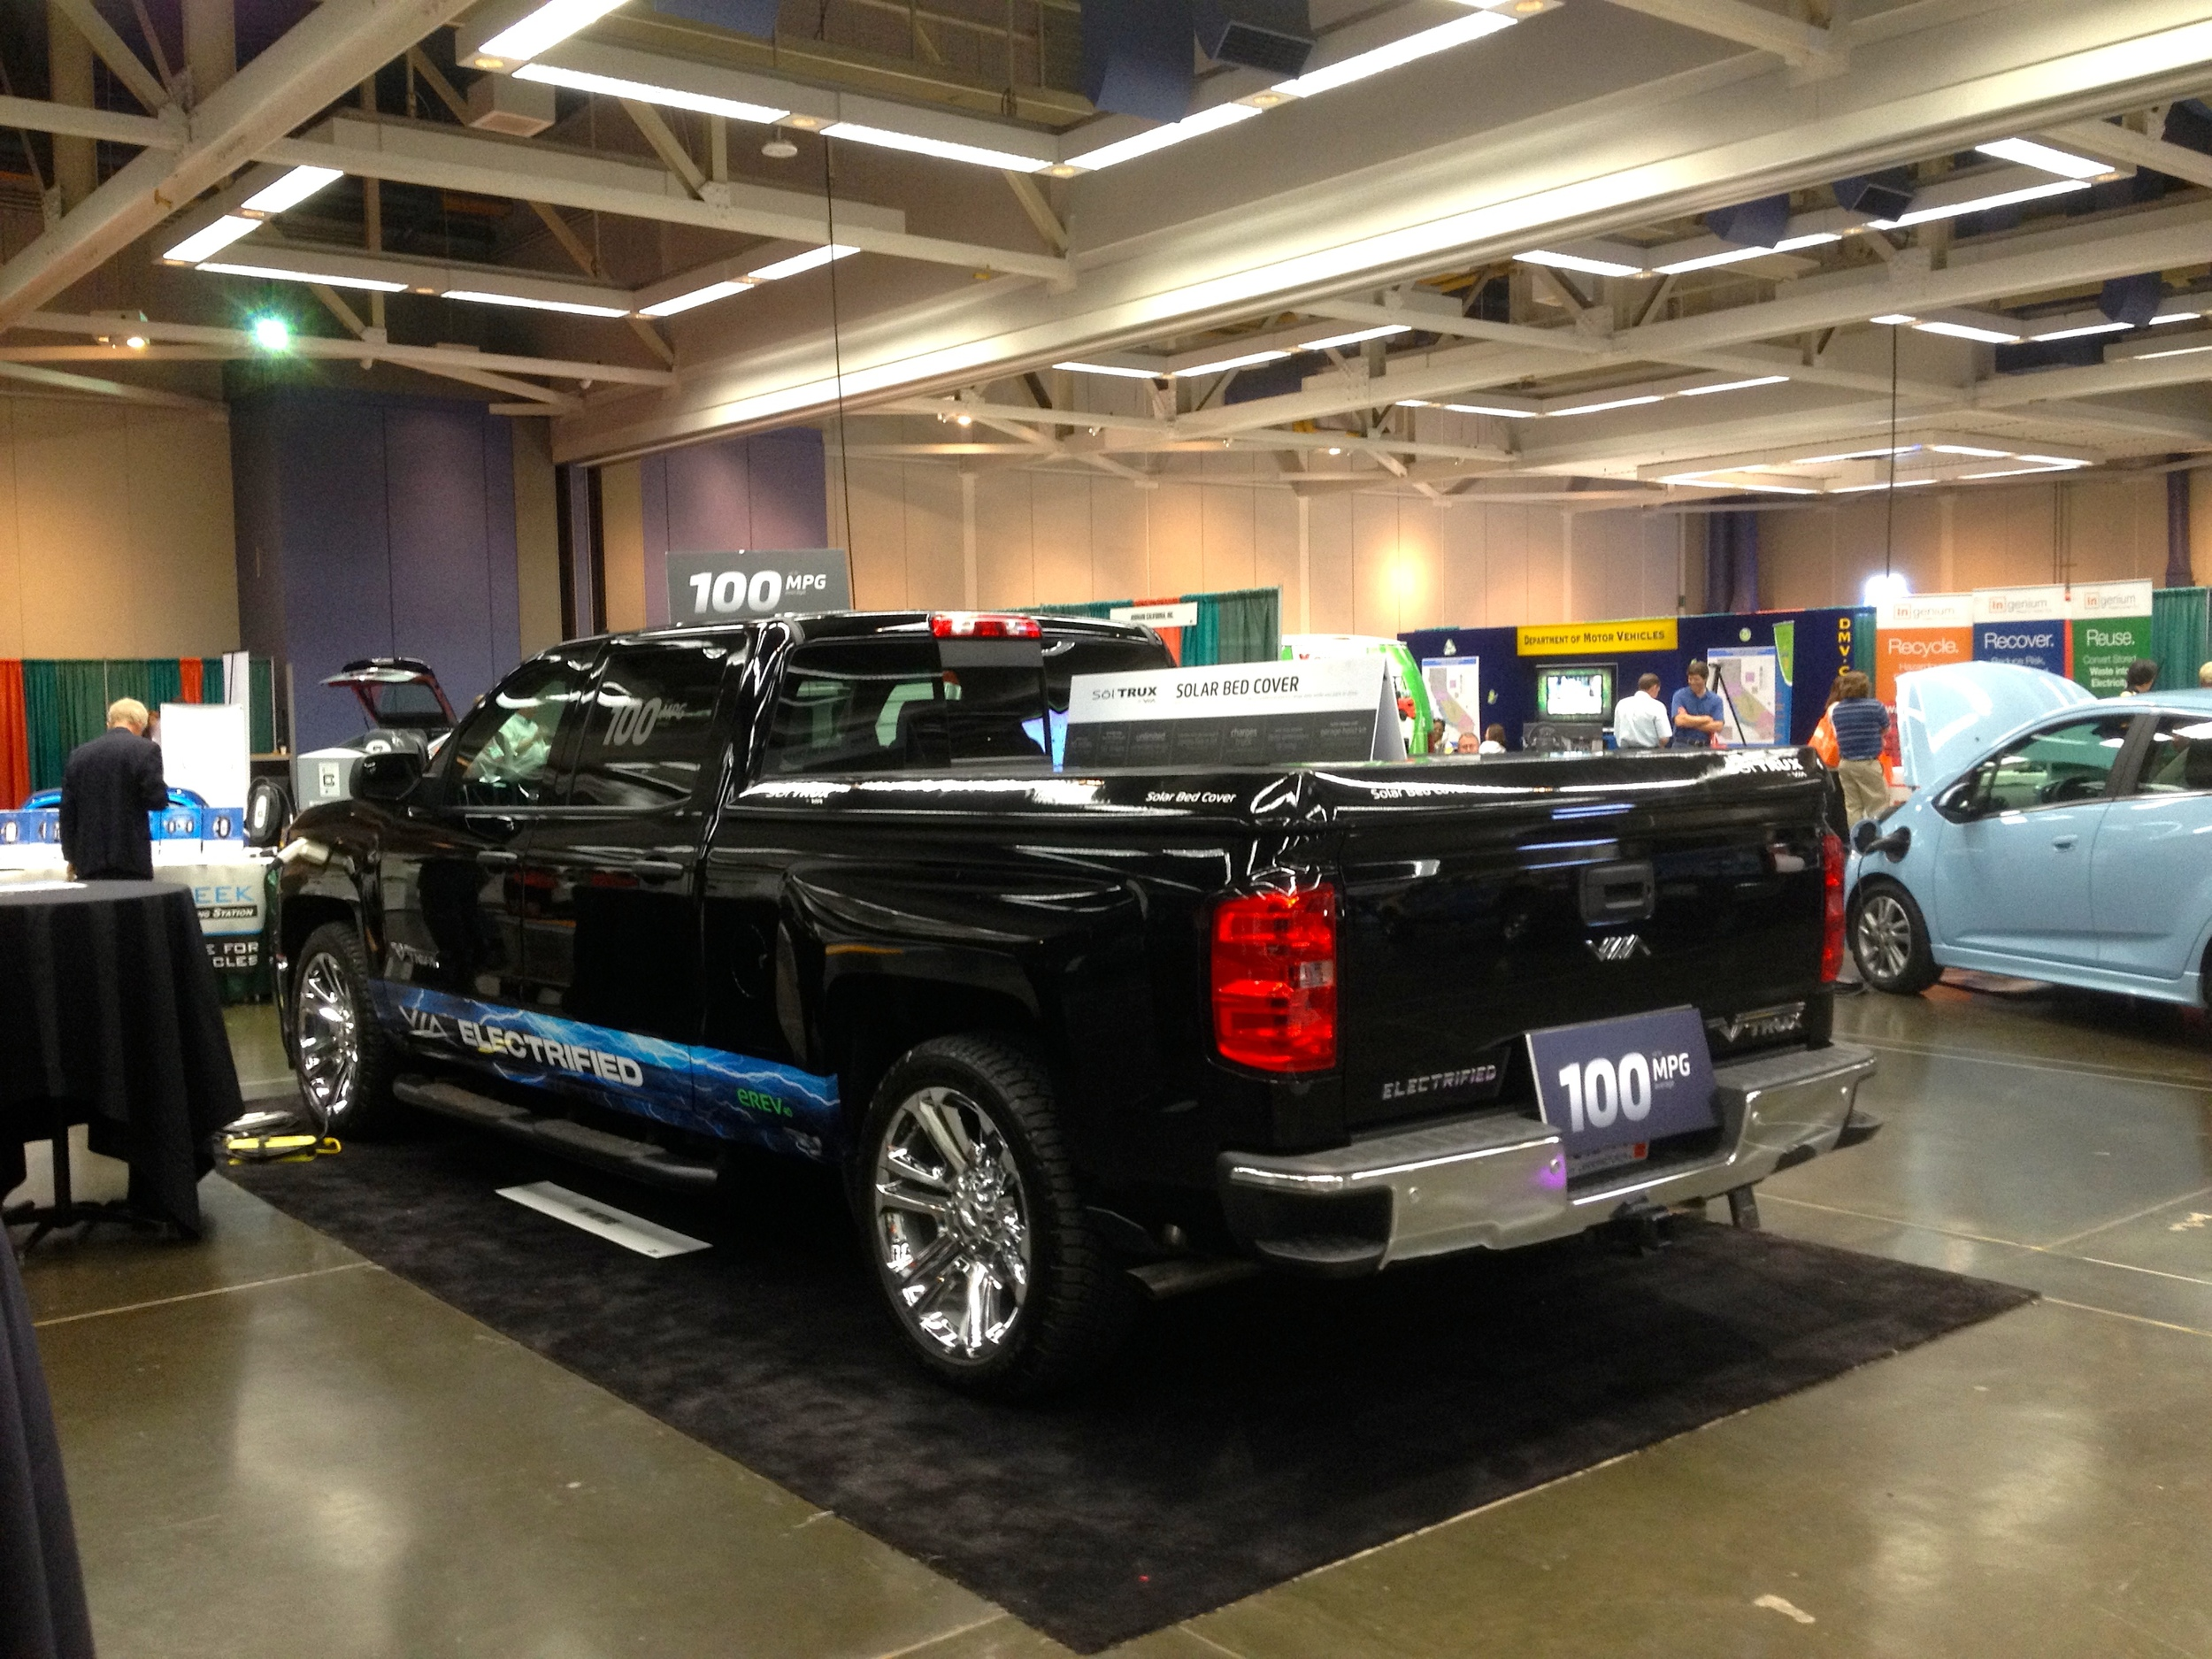 Solar Roof Bed Pick-Up Truck